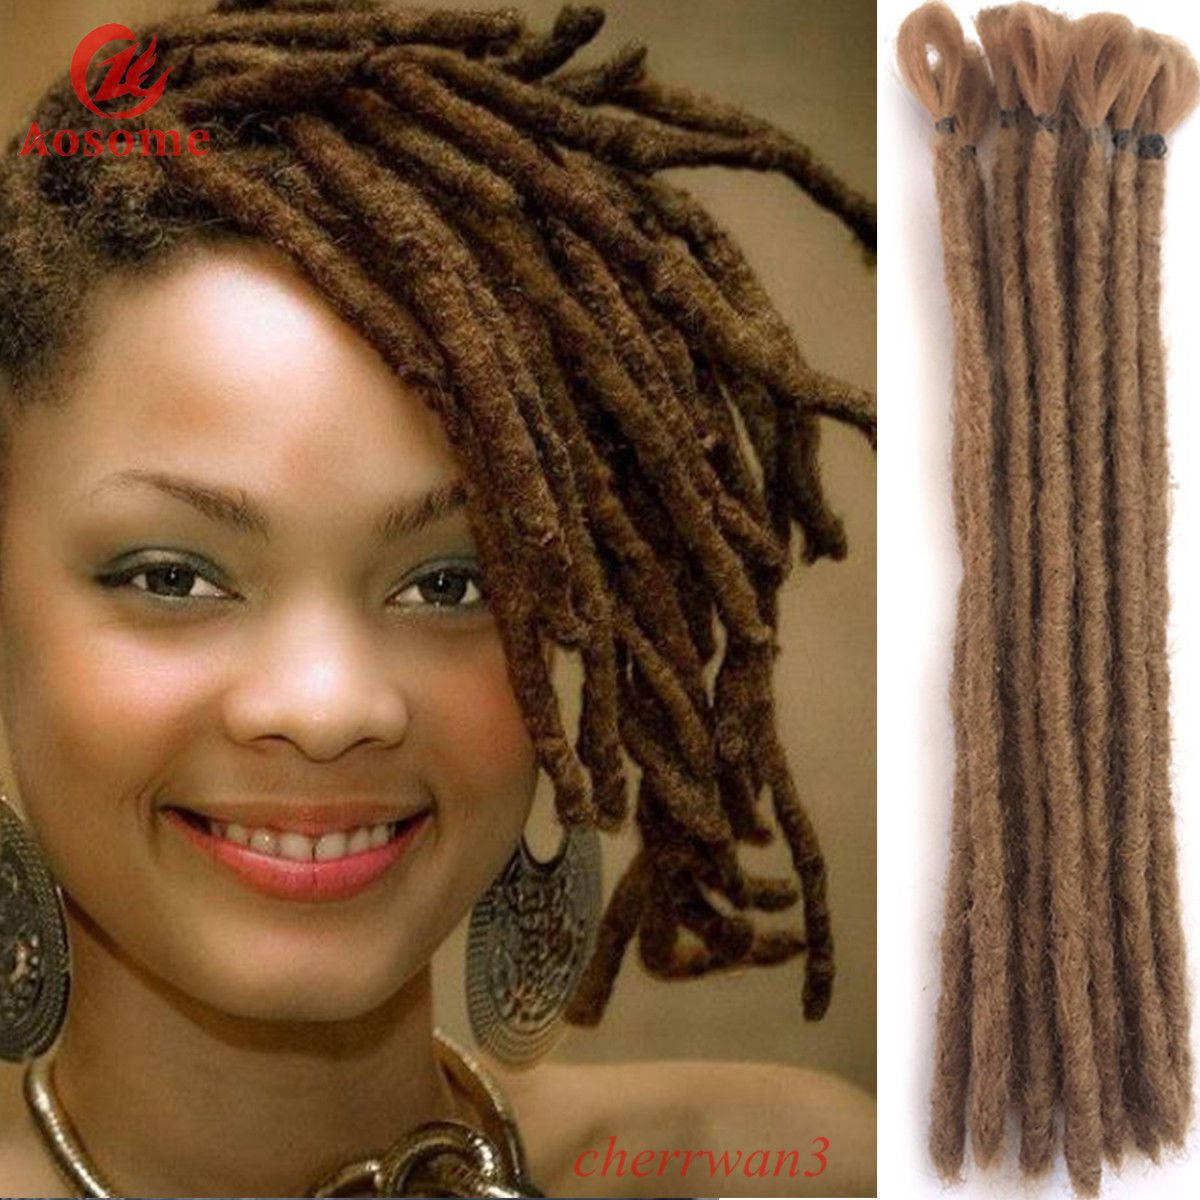 1379 Aud 5 Dreads 30cm Short Dreadlocks Extensions Synthetic